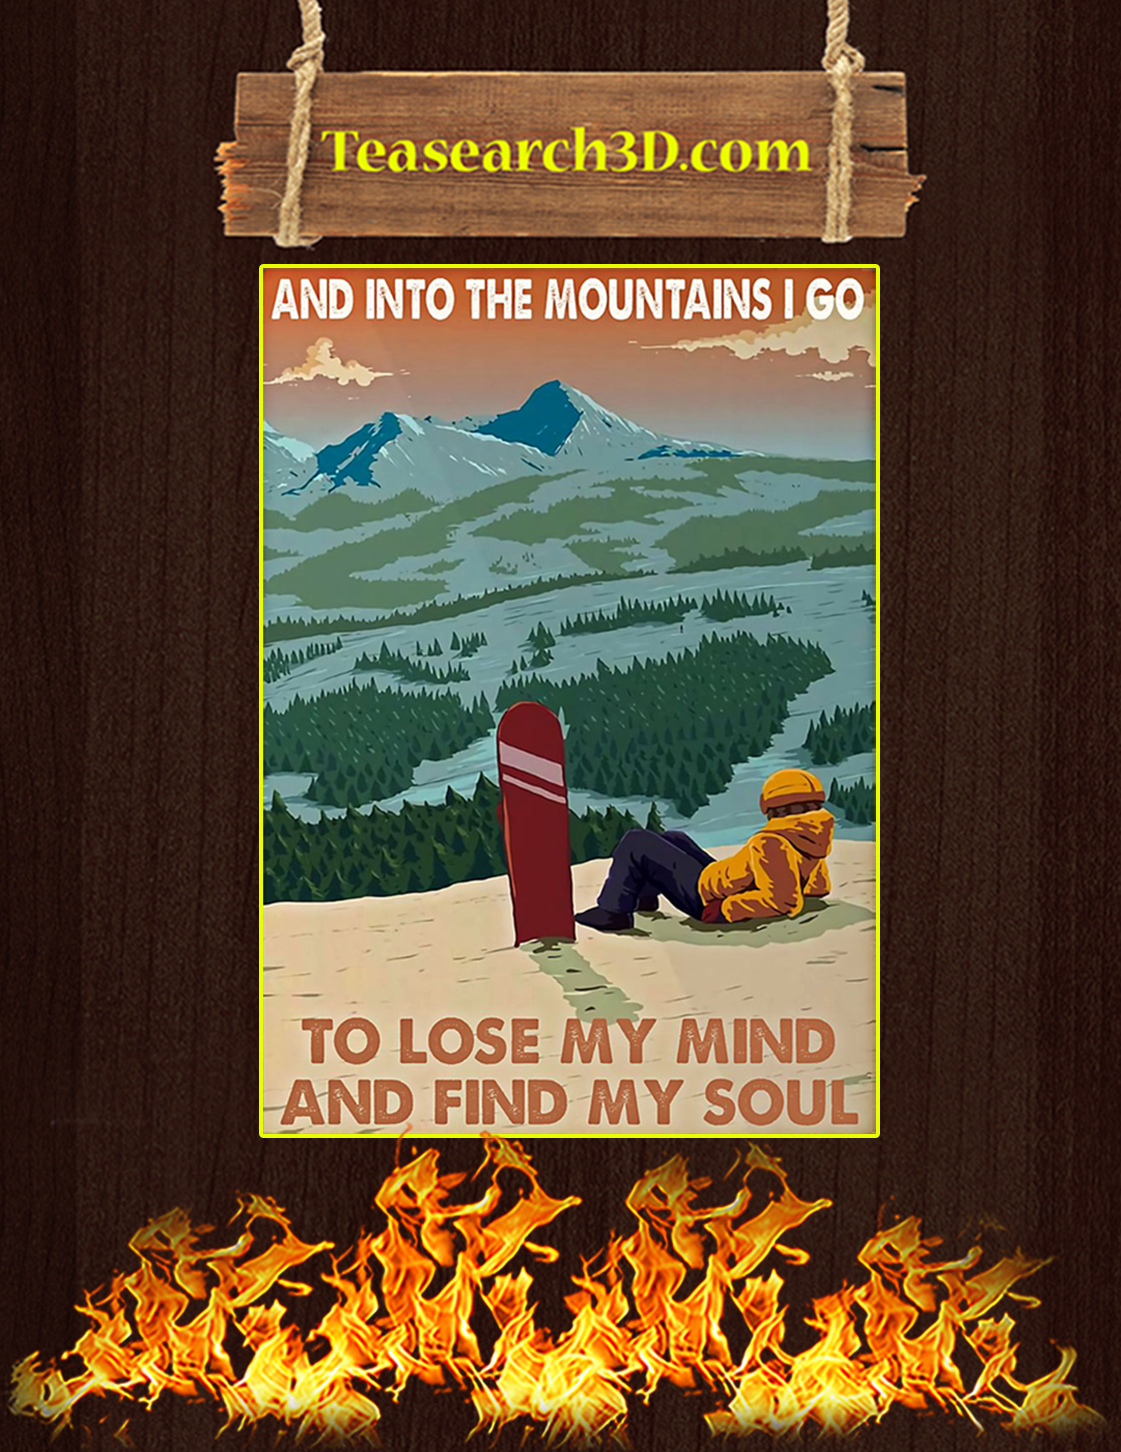 Snowboard And into the mountains I go to lose my mind and find my soul poster A3